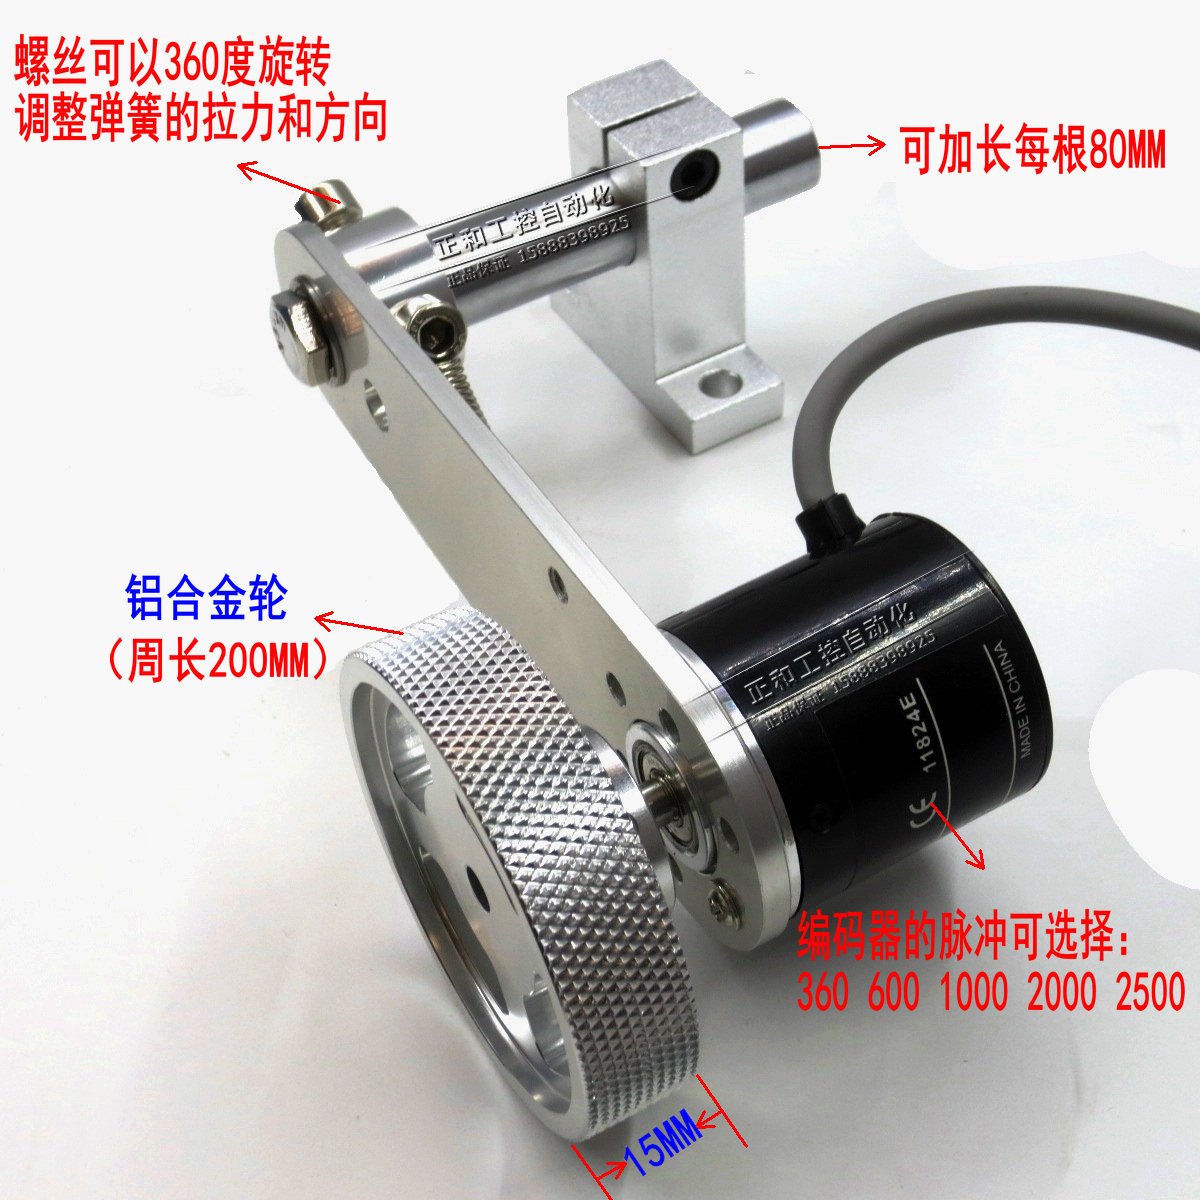 High Precision Meter, Rotary Encoder High Precision Meter, Rotary Encoder